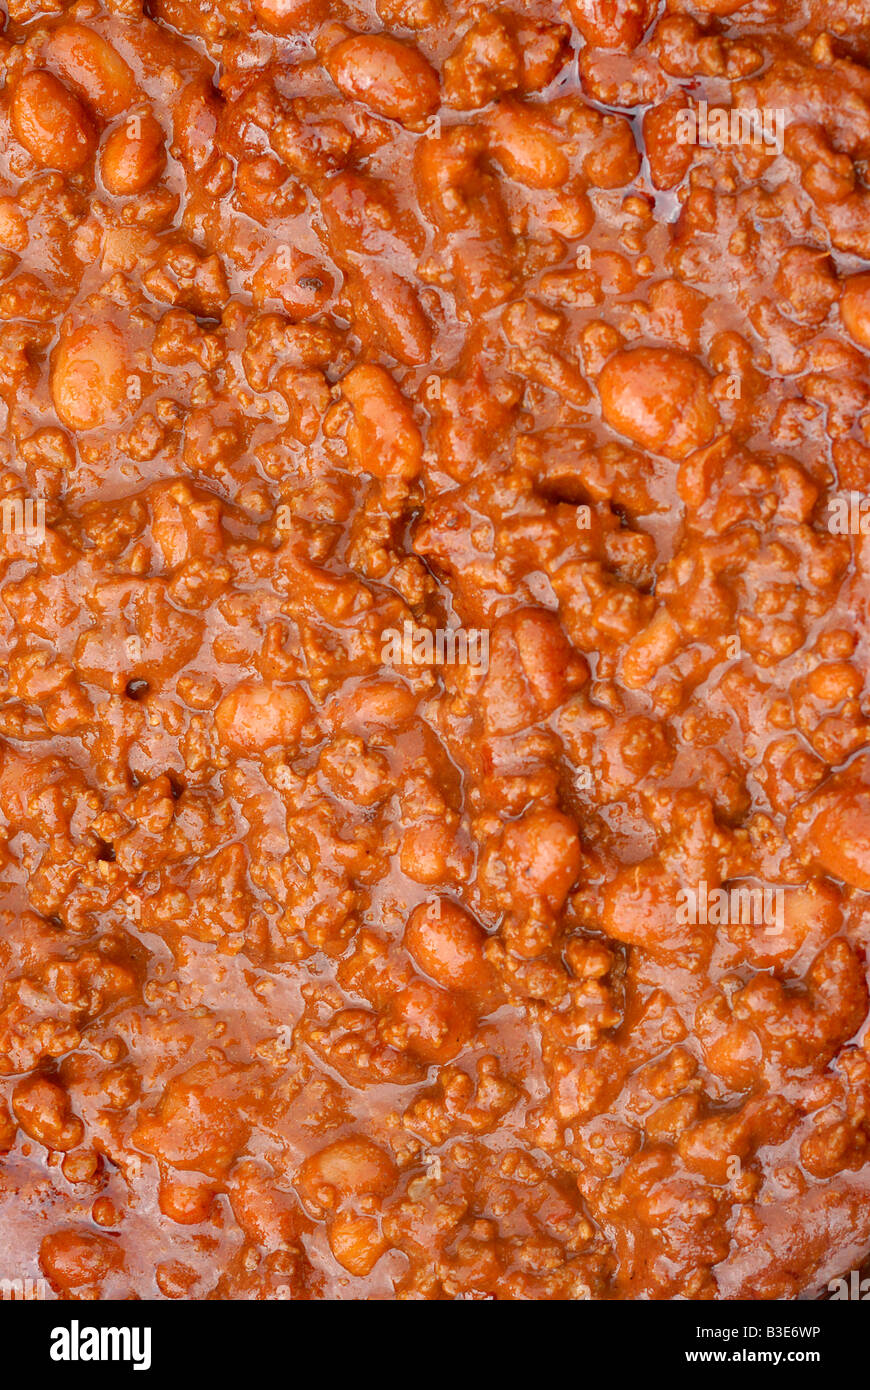 Close up of a big pot of hot chili con carne - Stock Image